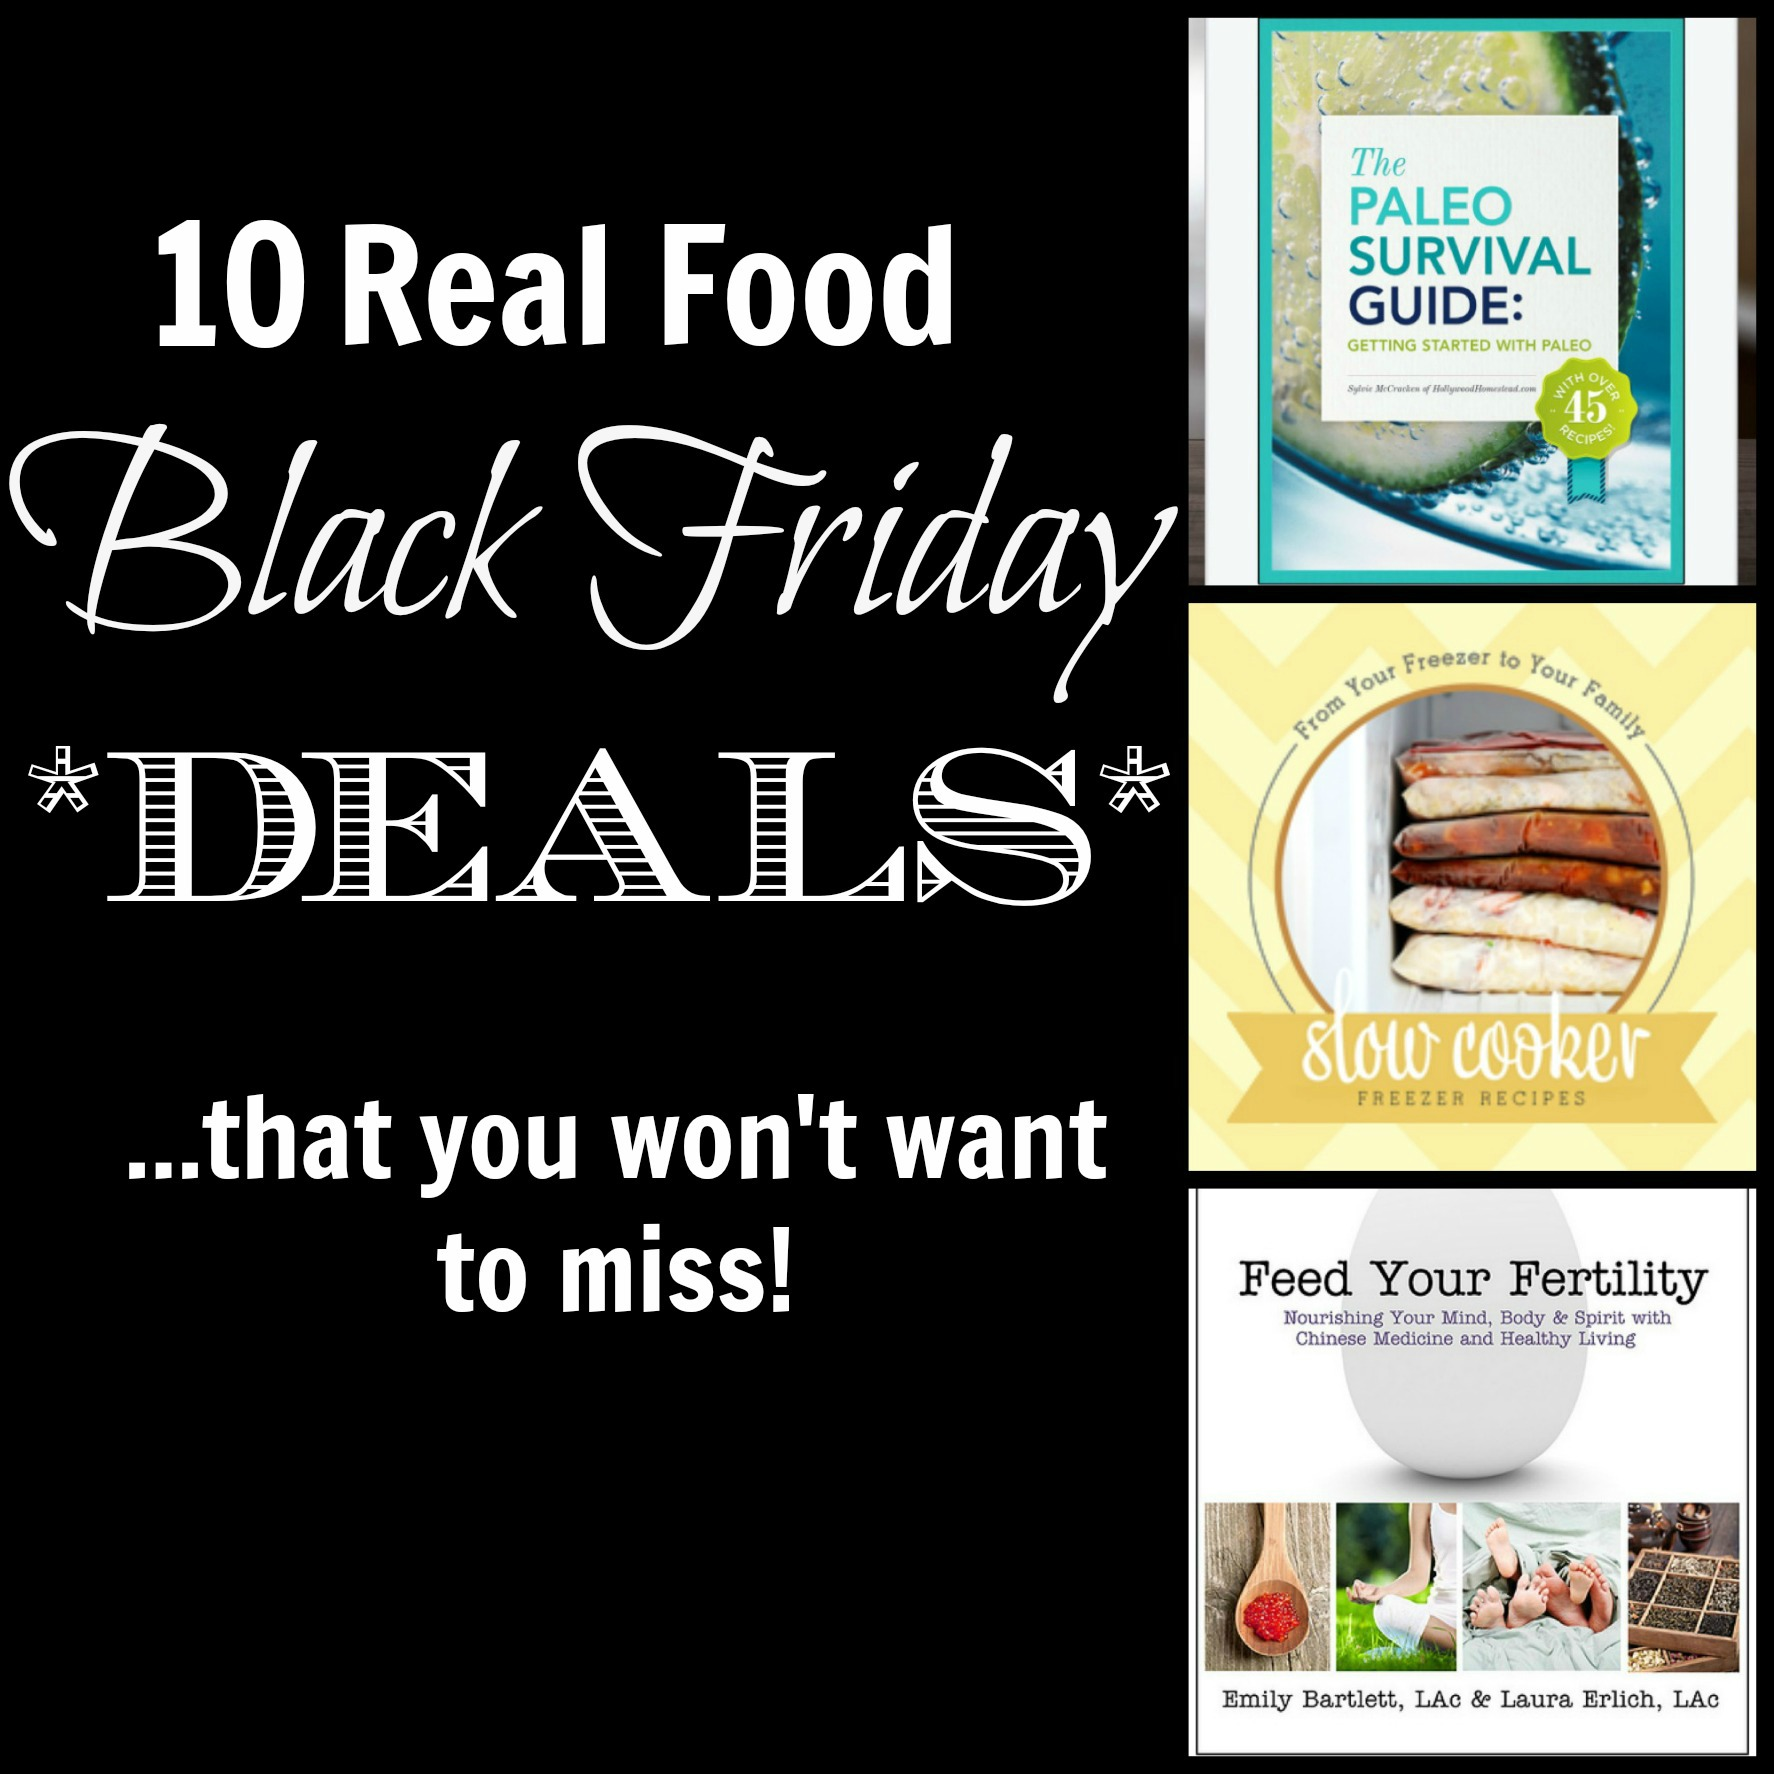 10 real food black friday deals you don 39 t want to miss rubies radishes. Black Bedroom Furniture Sets. Home Design Ideas